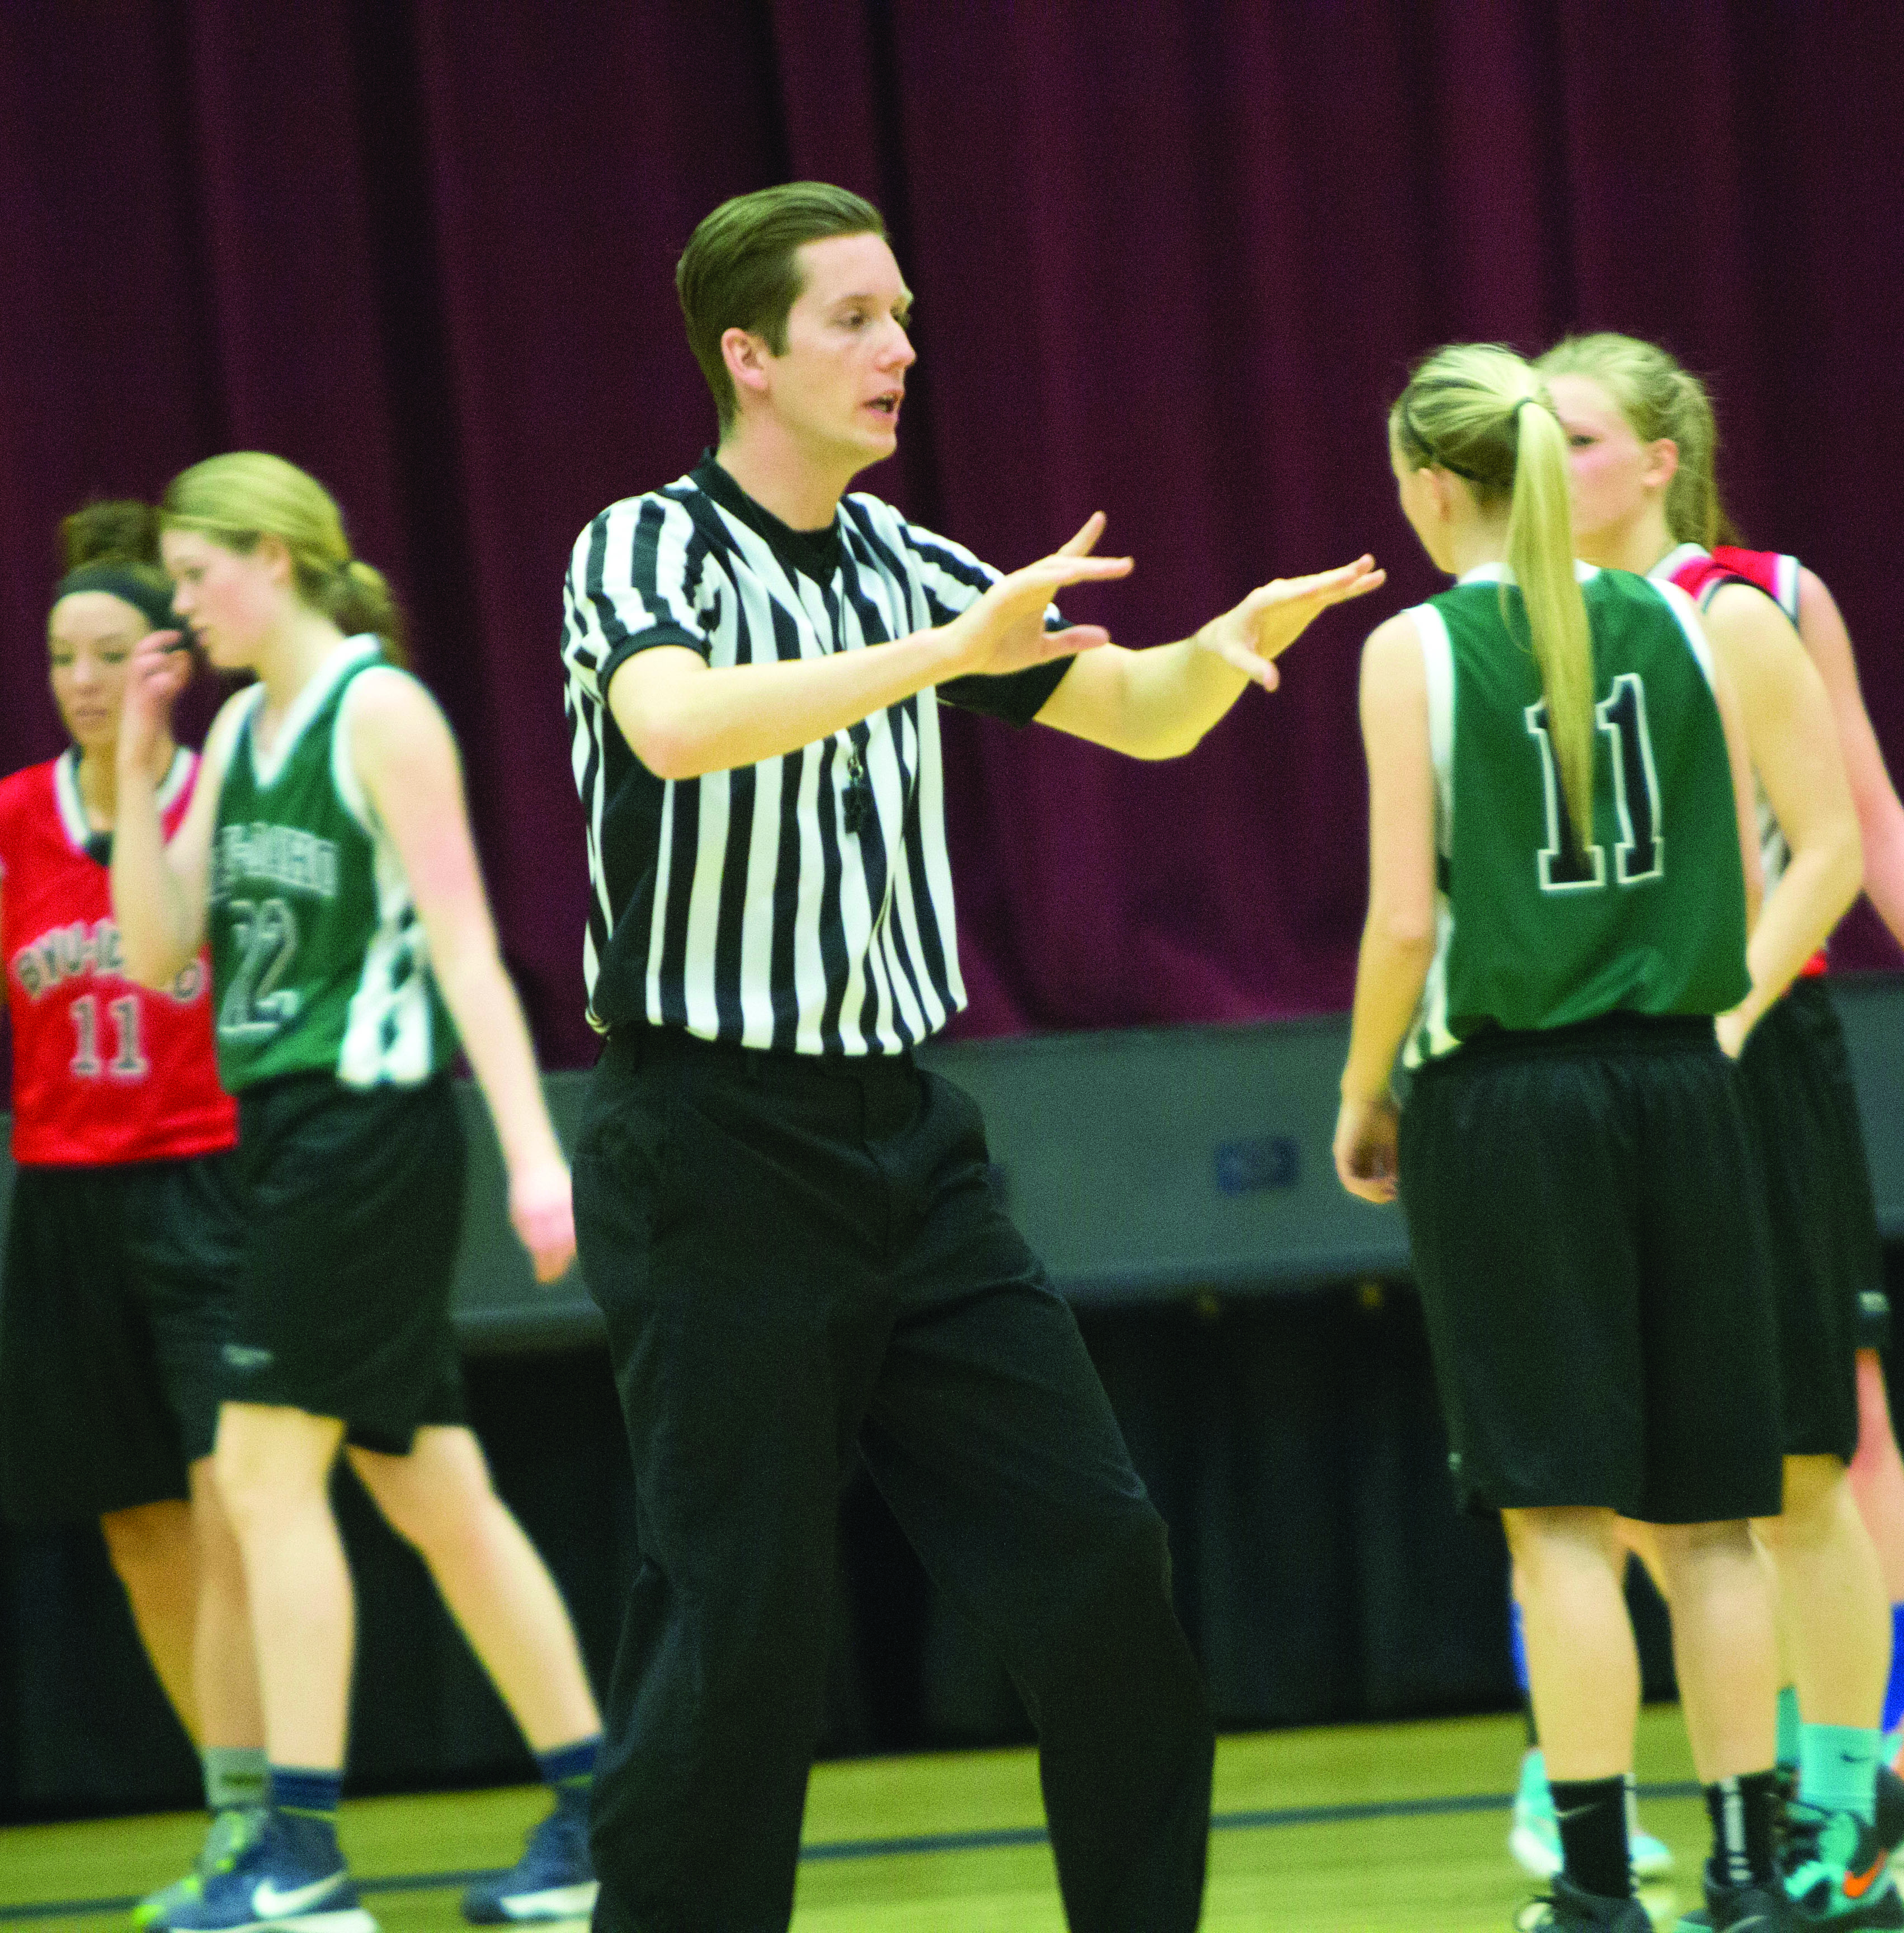 BYU-I referees ask for understanding